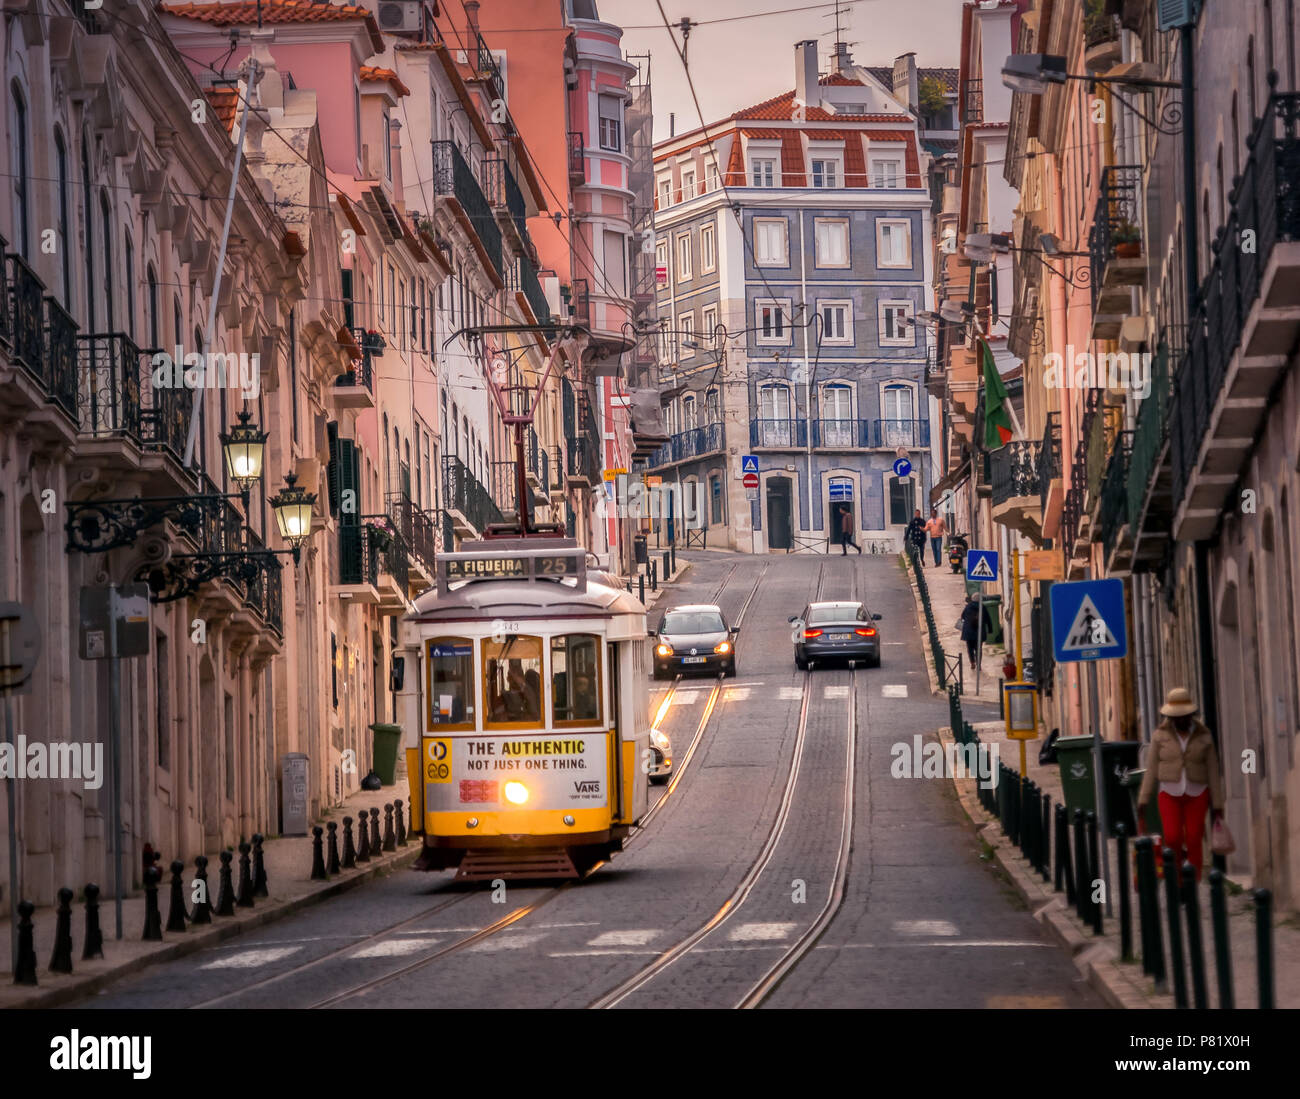 Lisbon, Portugal, famous tram in the Lapa area - Stock Image